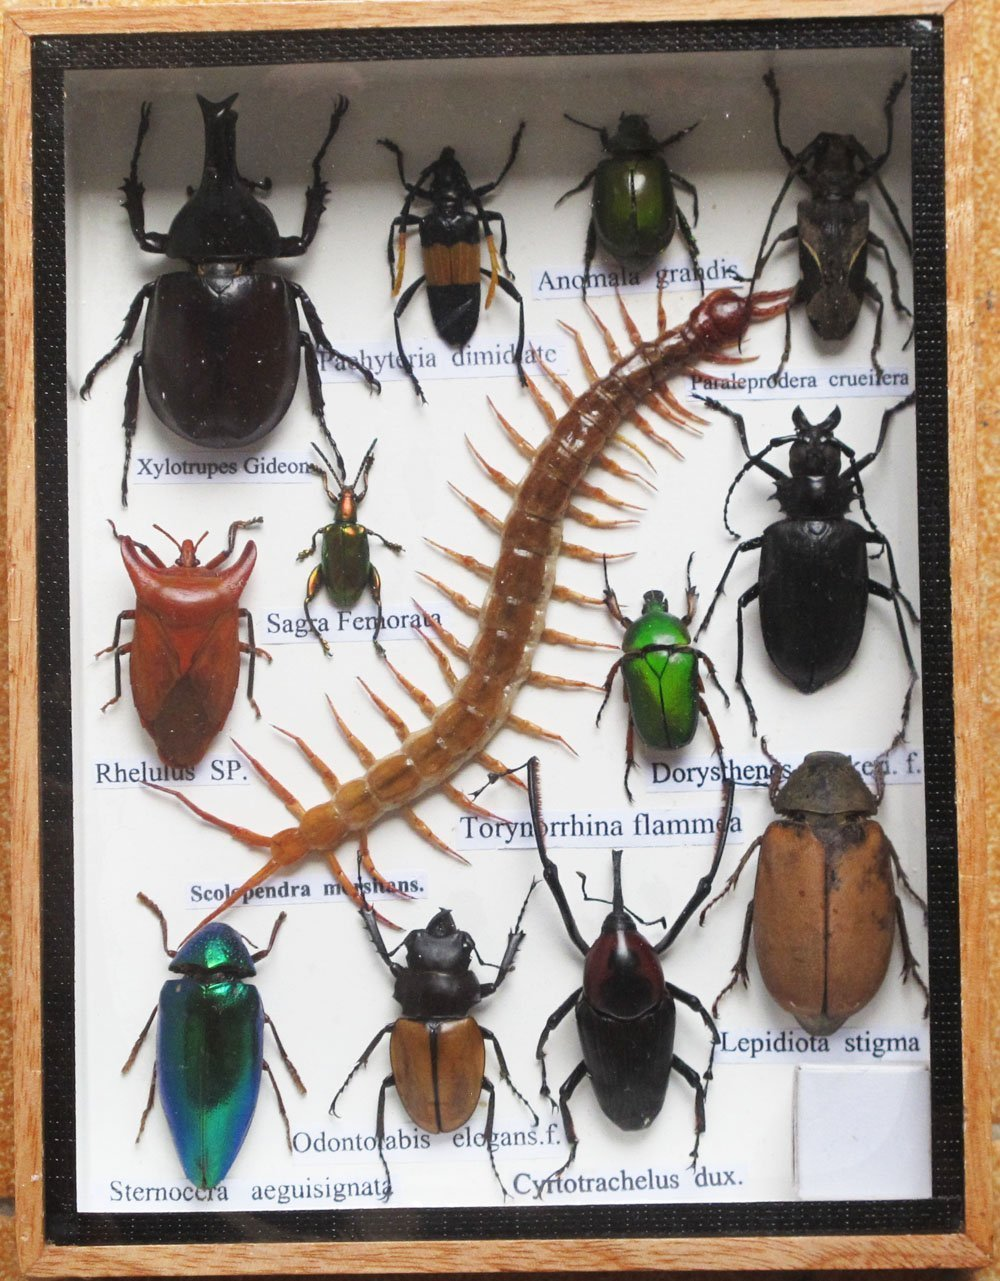 B00S2VPFFE REAL CENTIPEDE AND MIXS RARE INSECT TAXIDERMY SET IN BOXES DISPLAY FOR COLLECTIBLES 71FnmMLJguL